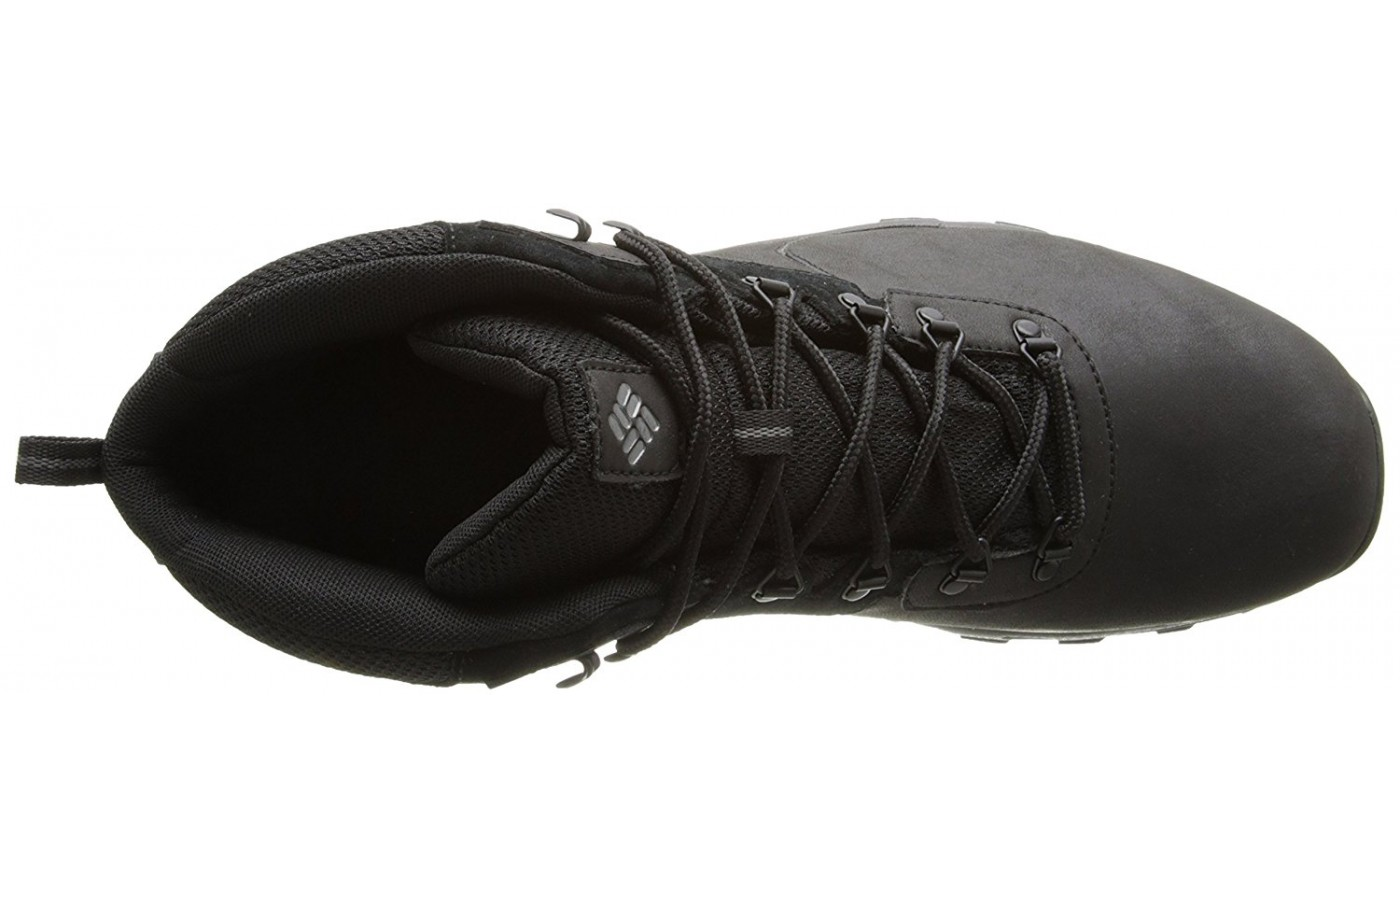 A top view of the Columbia Newton Ridge Plus II hiking boot